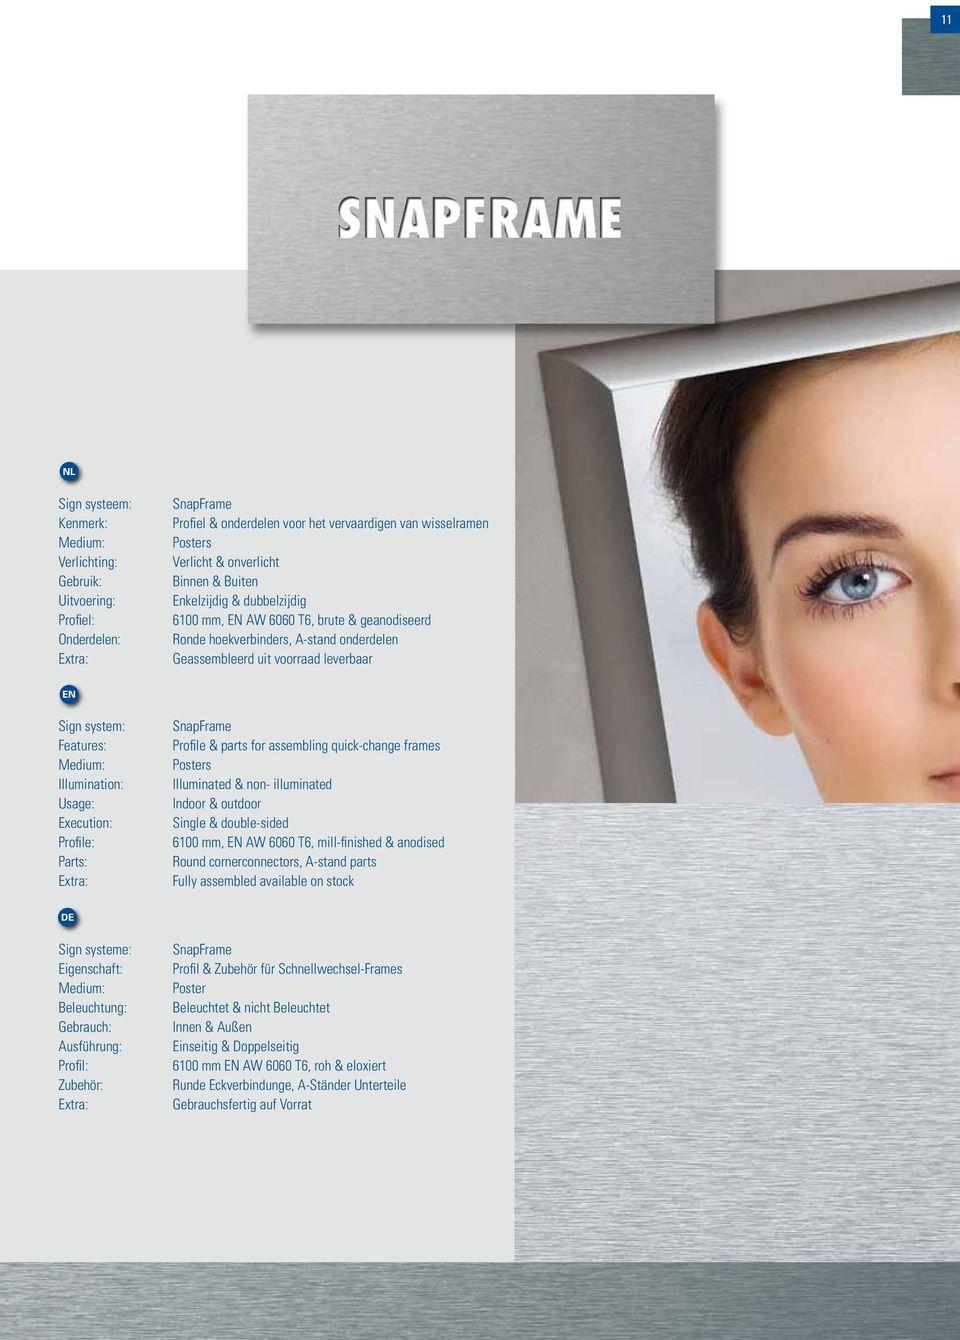 Illumination: Usage: Execution: Profile: Parts: Extra: SnapFrame Profile & parts for assembling quick-change frames Posters Illuminated & non- illuminated Indoor & outdoor Single & double-sided 00